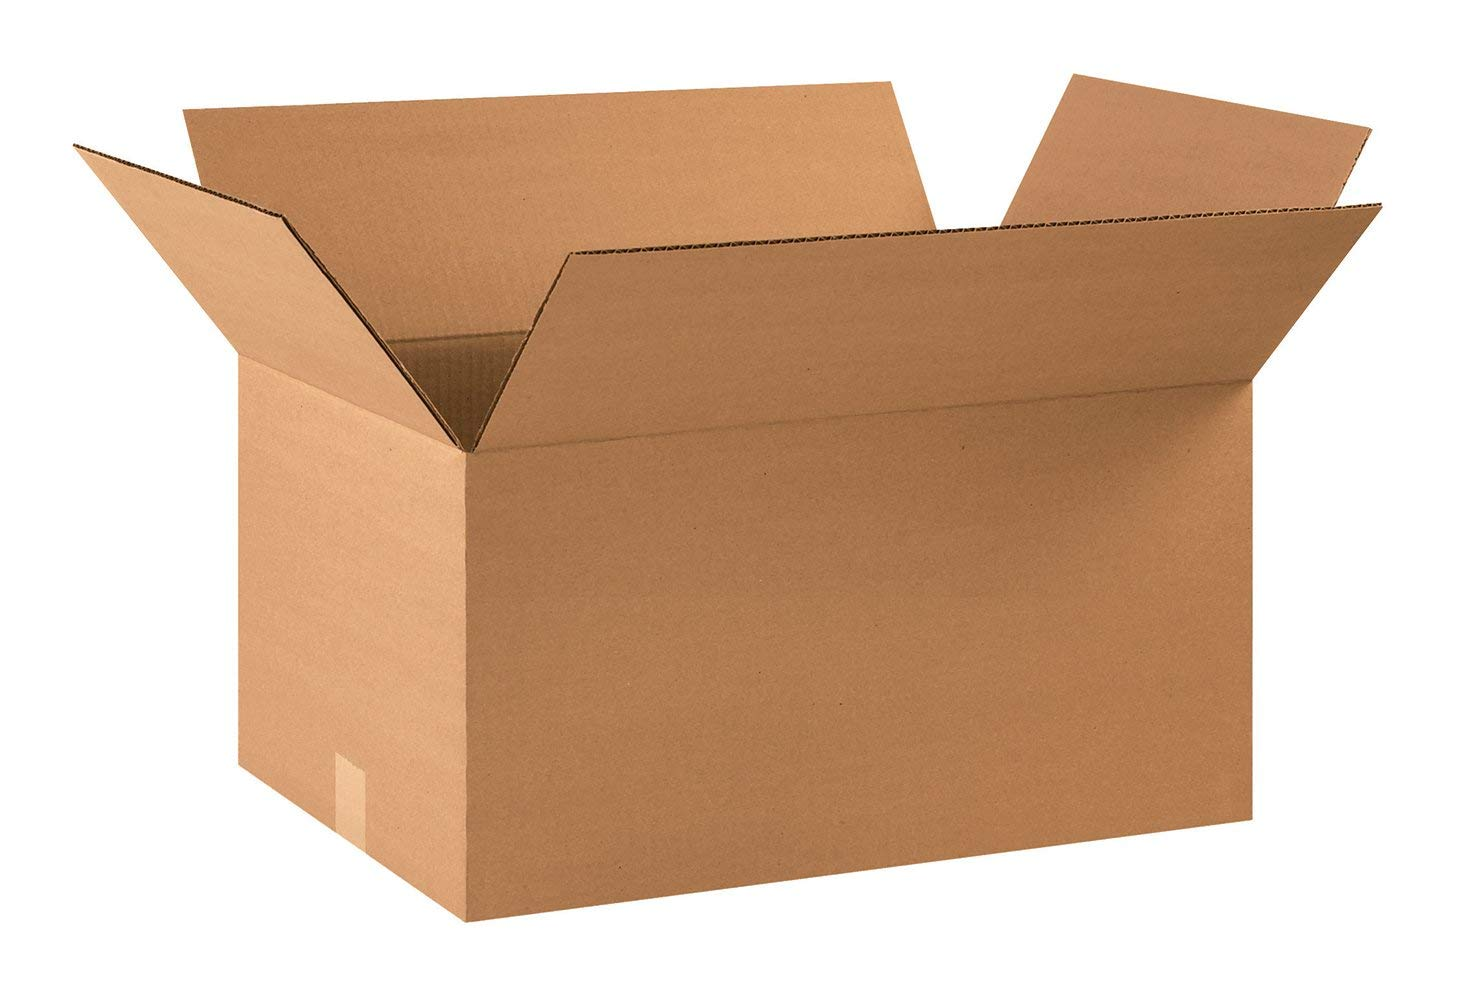 Pantryware Essentials 5 Medium Moving Boxes 20x14x10 Packing Cardboard Boxes- Bundle of 5 Boxes